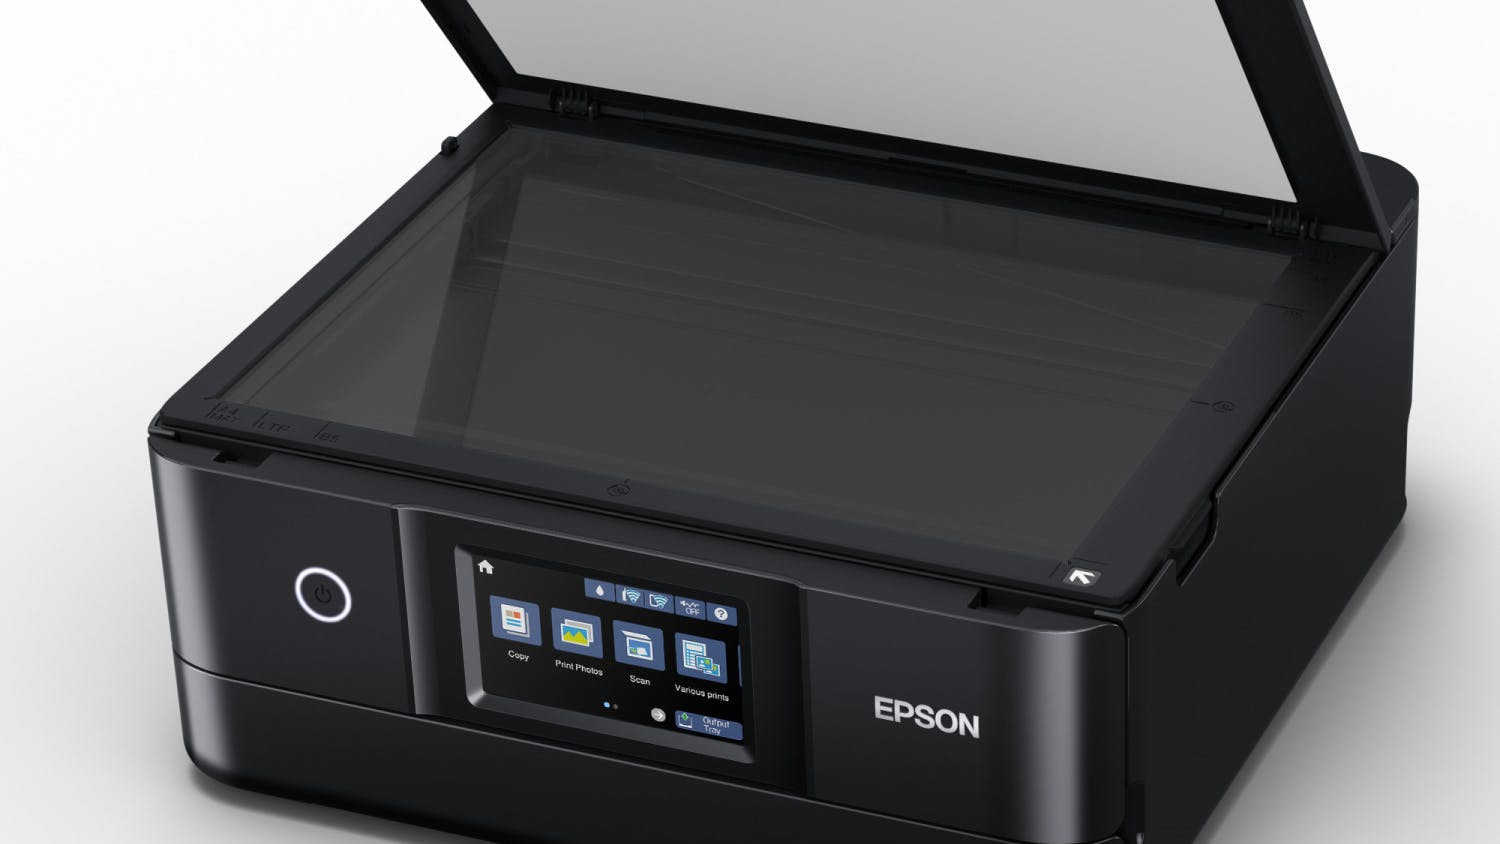 Epson Expression Photo XP-8600 All-in-One Printer